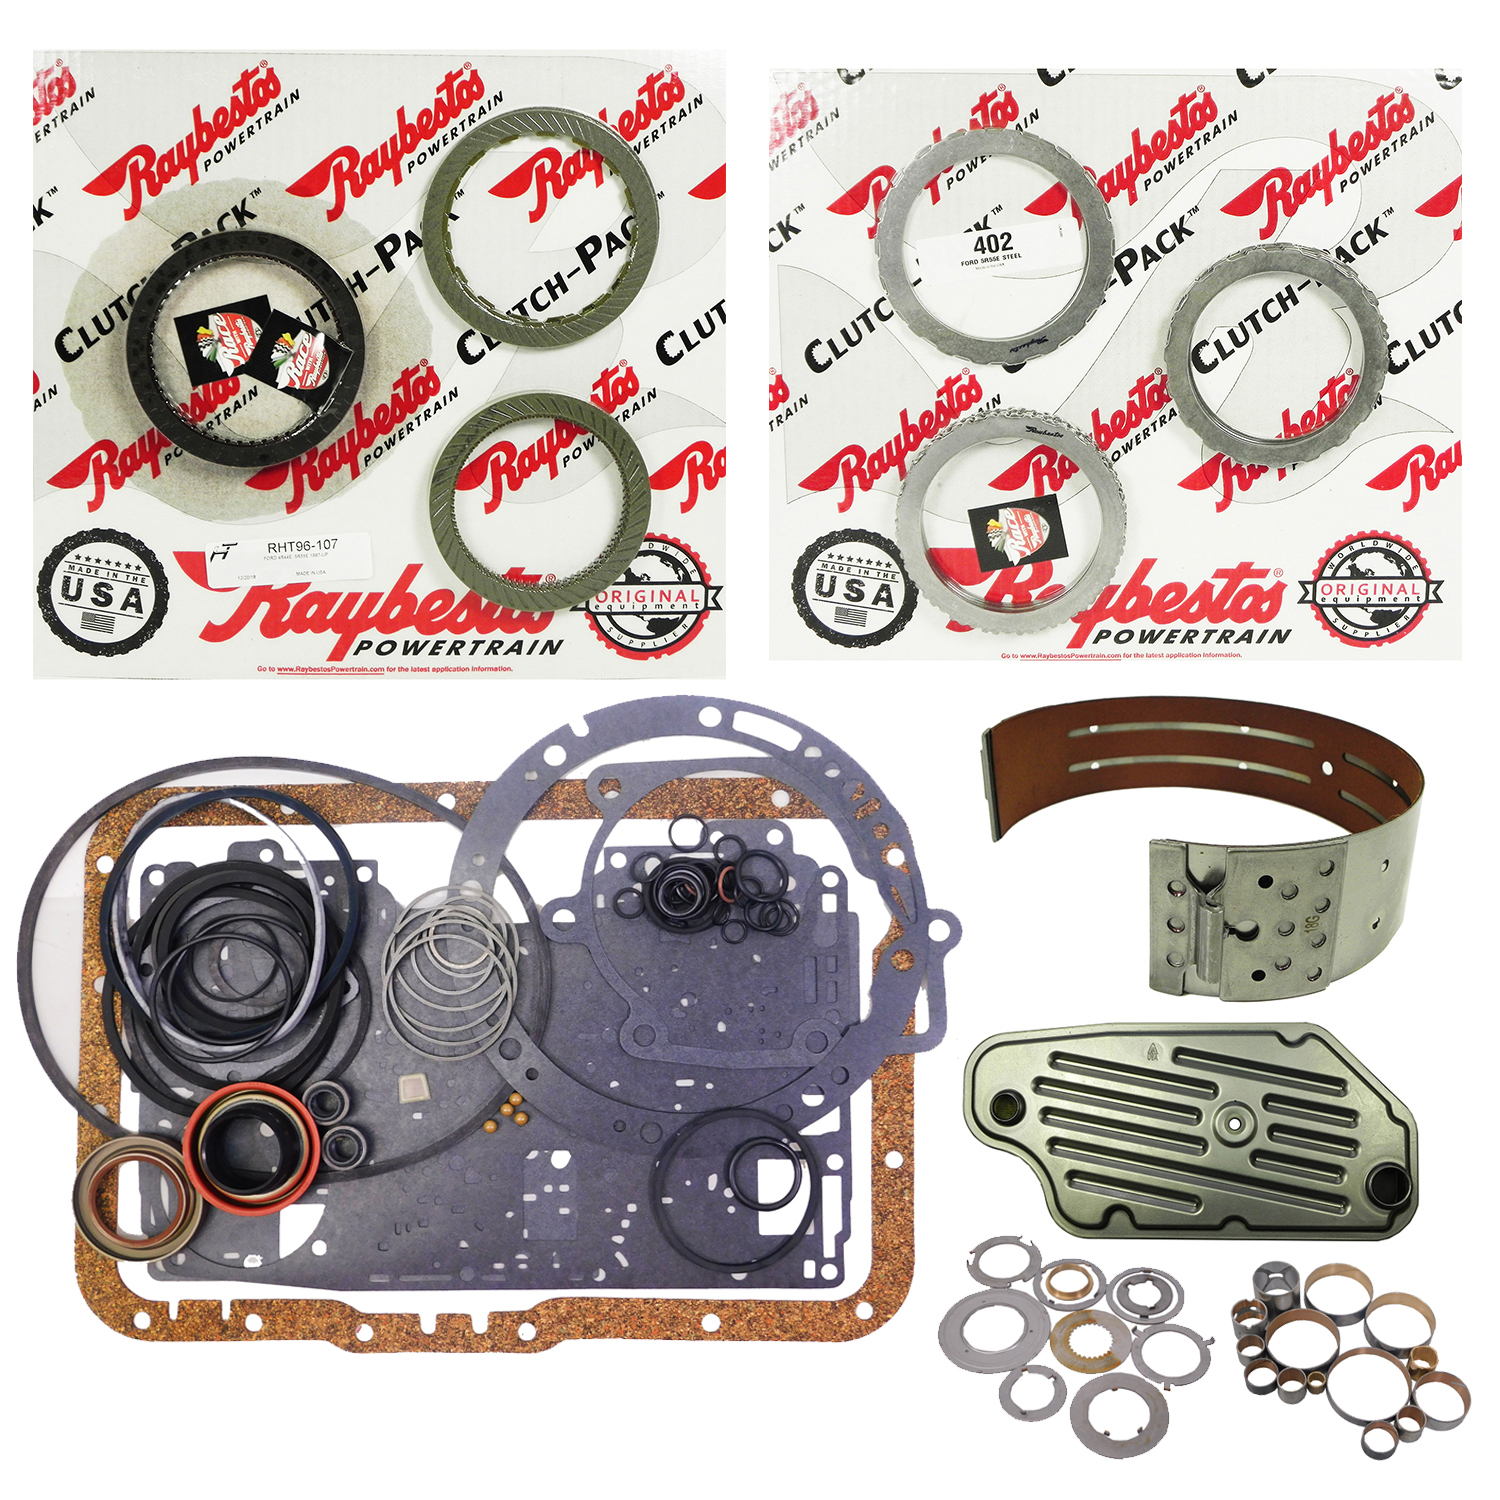 4R44E/4R55E/5R55E  Super Rebuild Kit